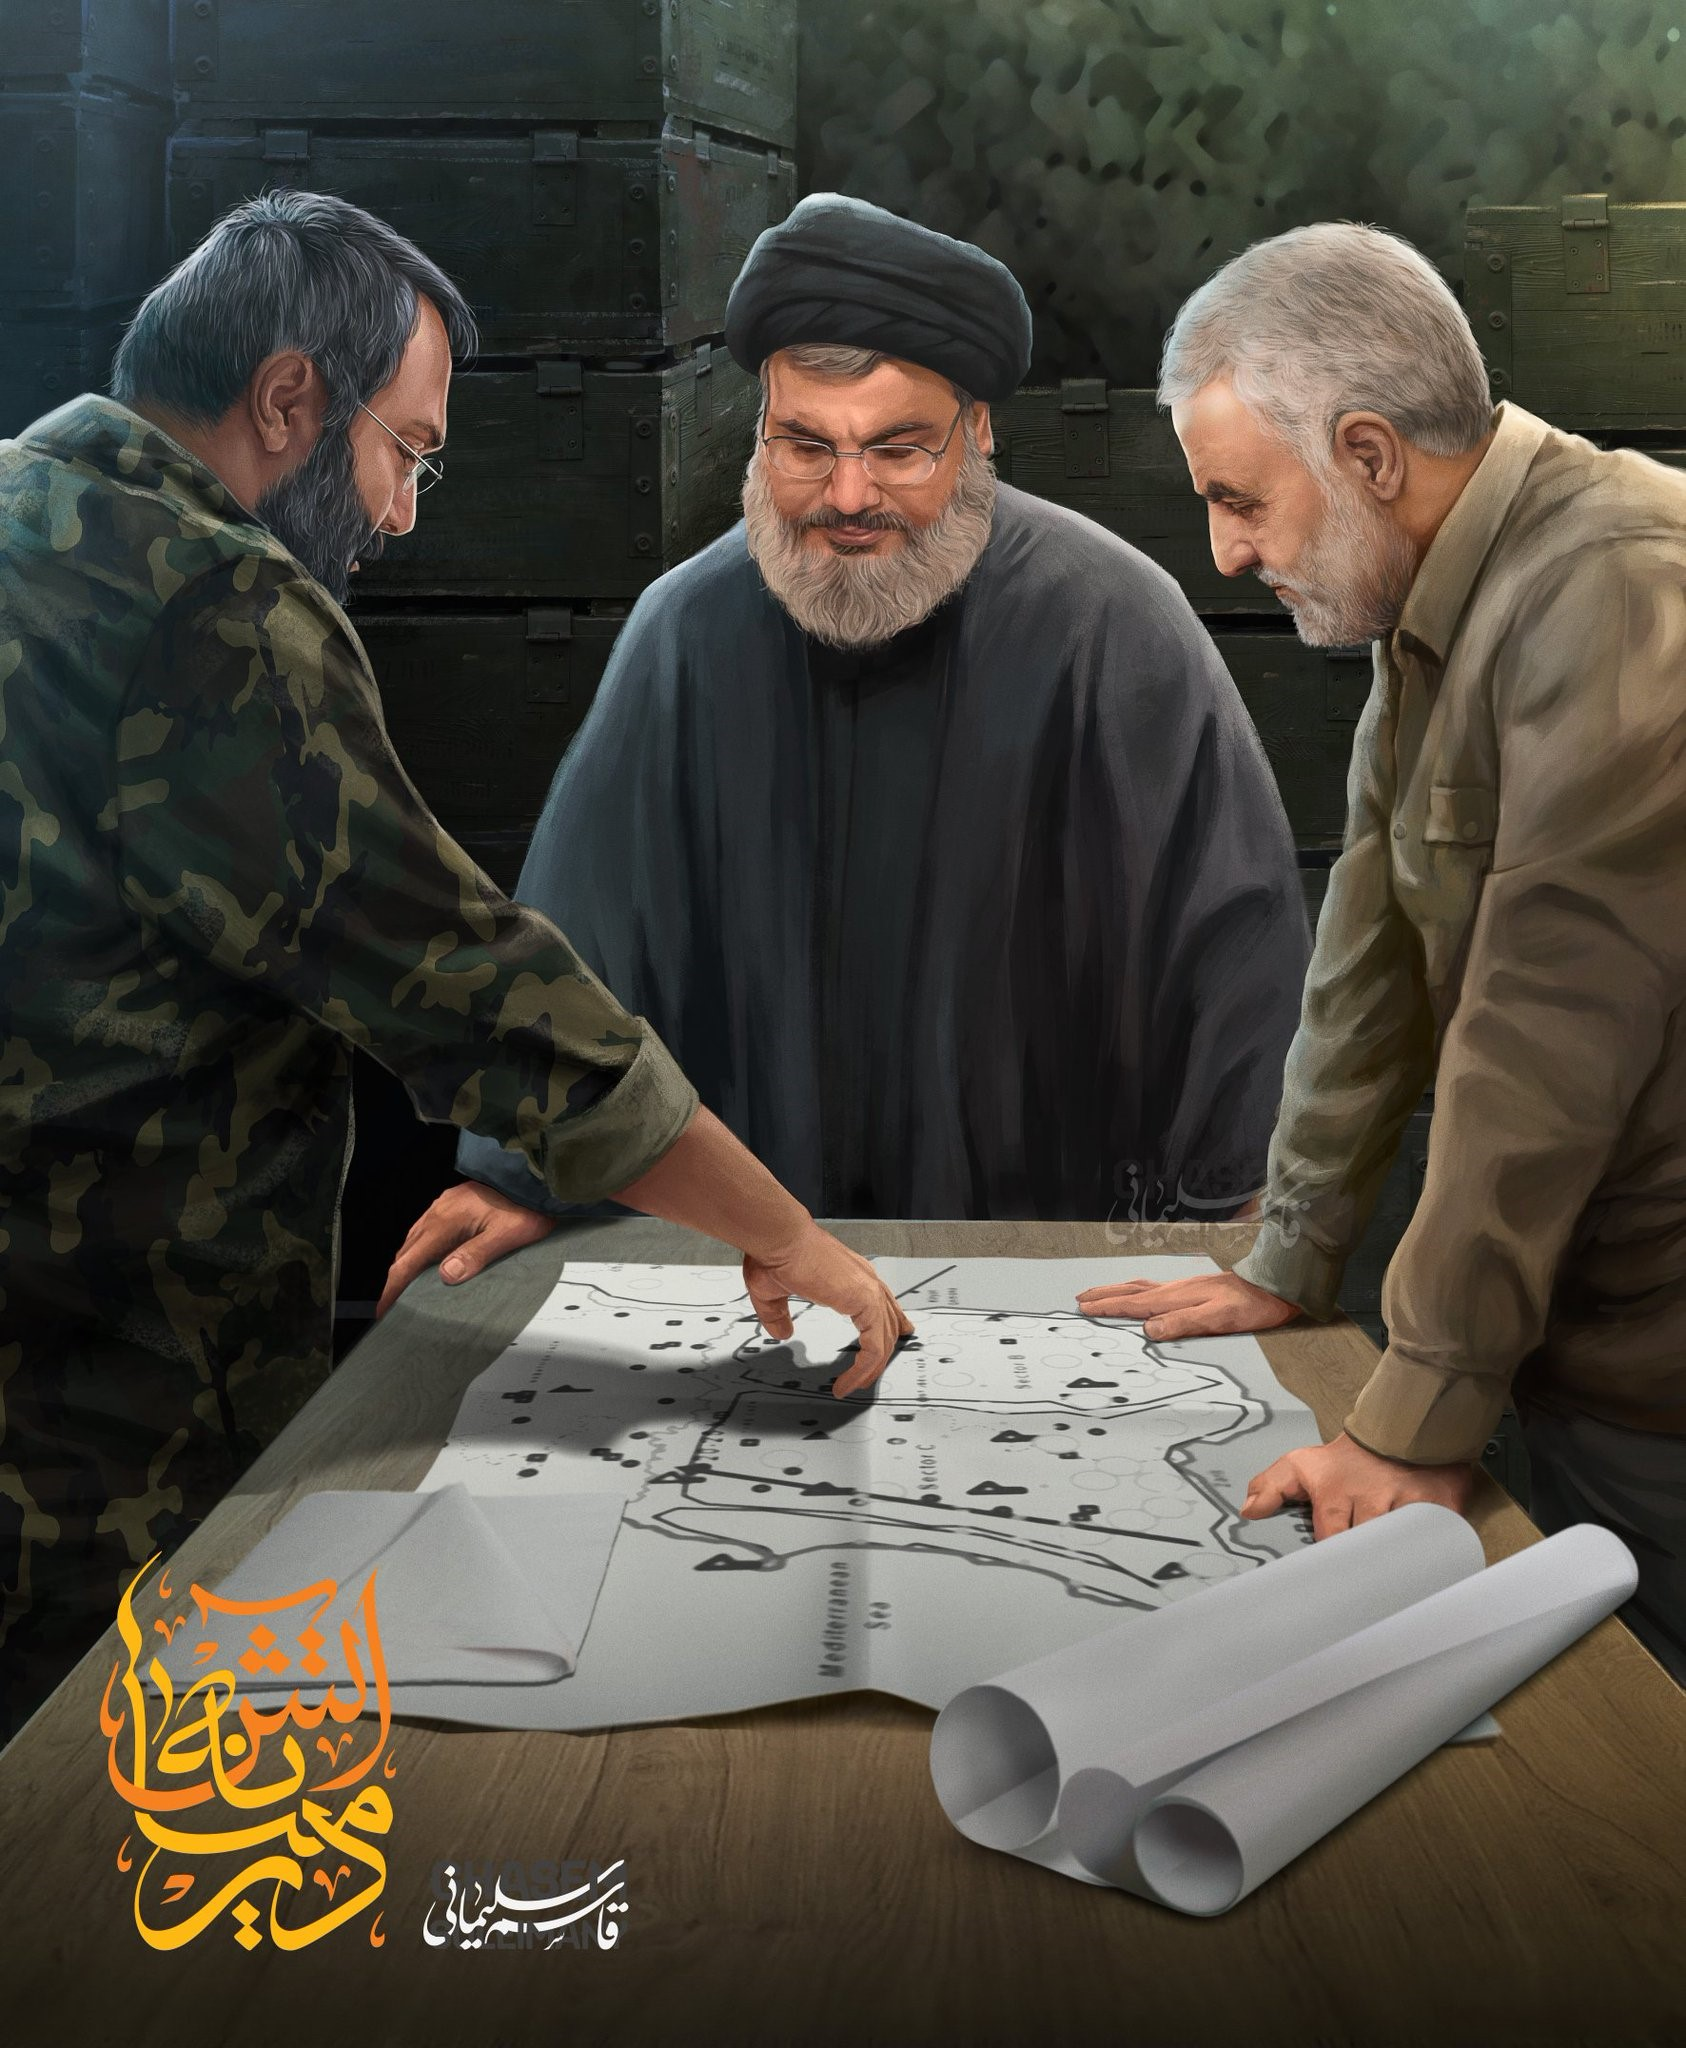 A painting of Imad Mughniyeh (left), briefing Hassan Nasrallah and Qasem Soleimani with a map showing military maneuvers from the 2006 Second Lebanon War.